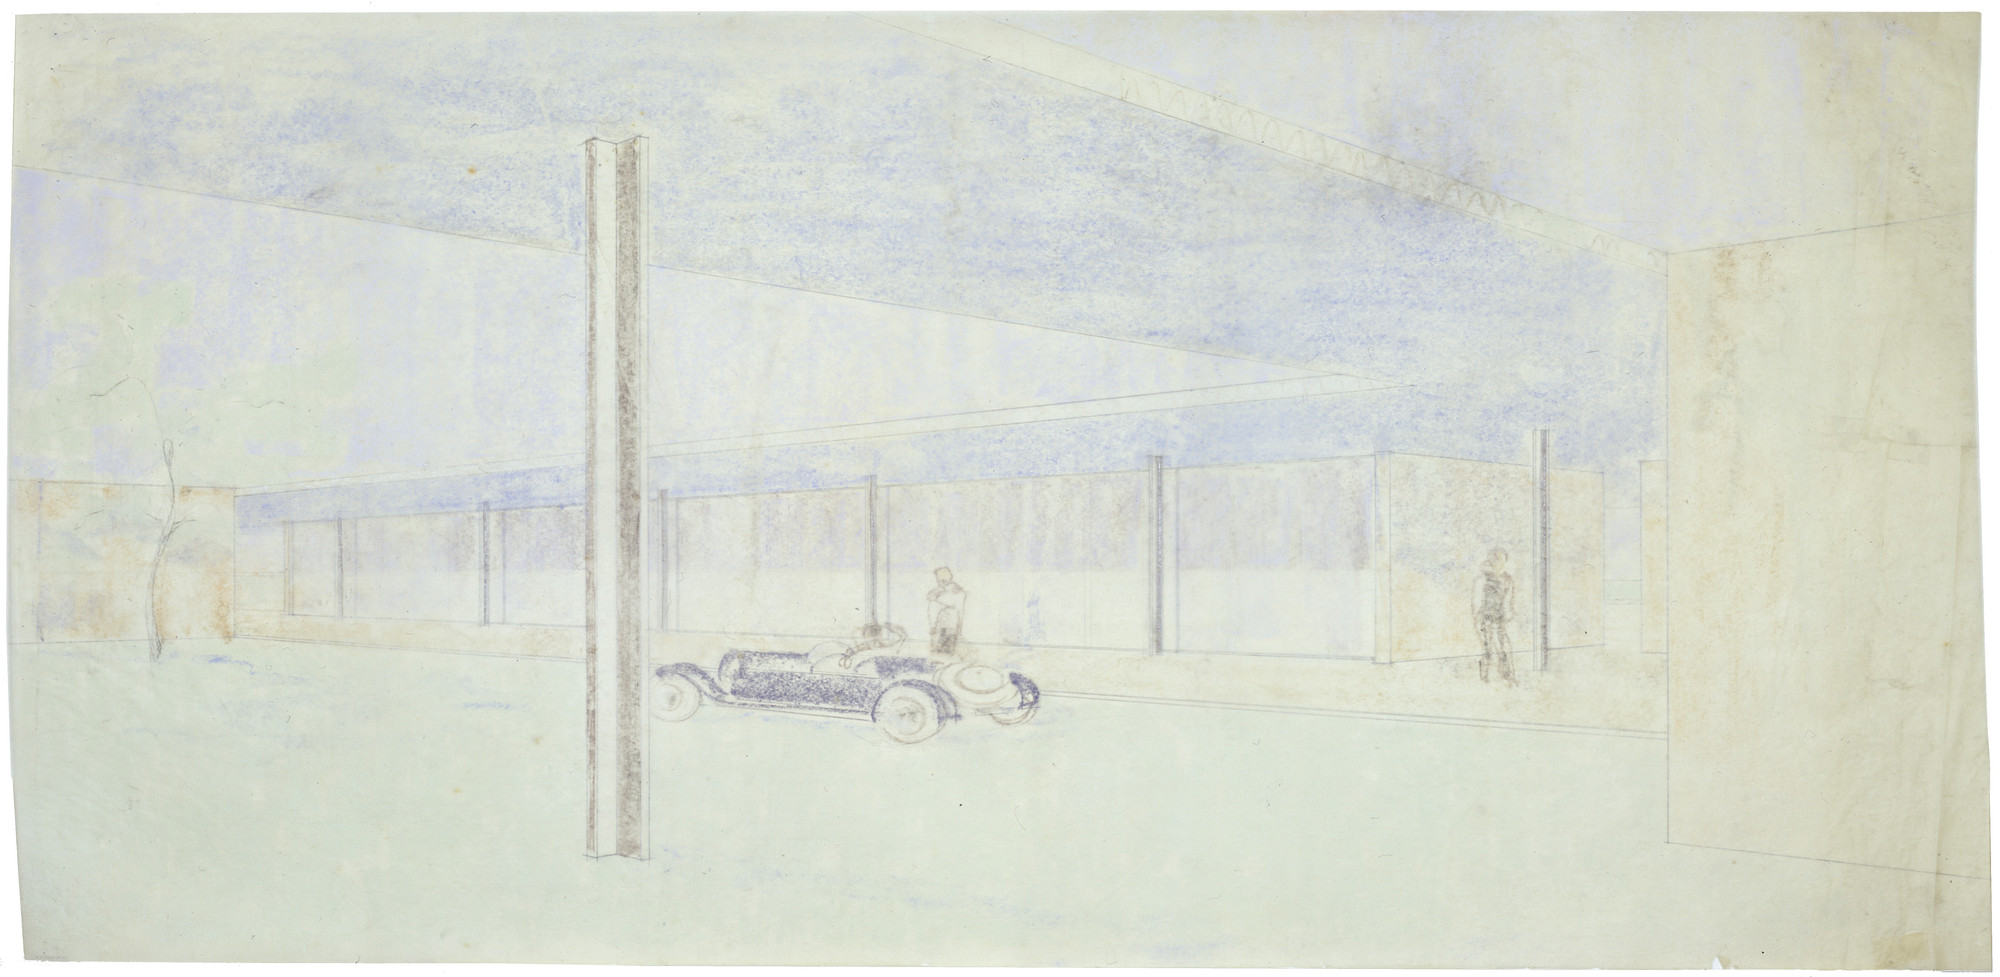 Ludwig Mies van der Rohe. Golf Club Project, Krefeld, Germany, Perspective view from beneath the canopy. 1930